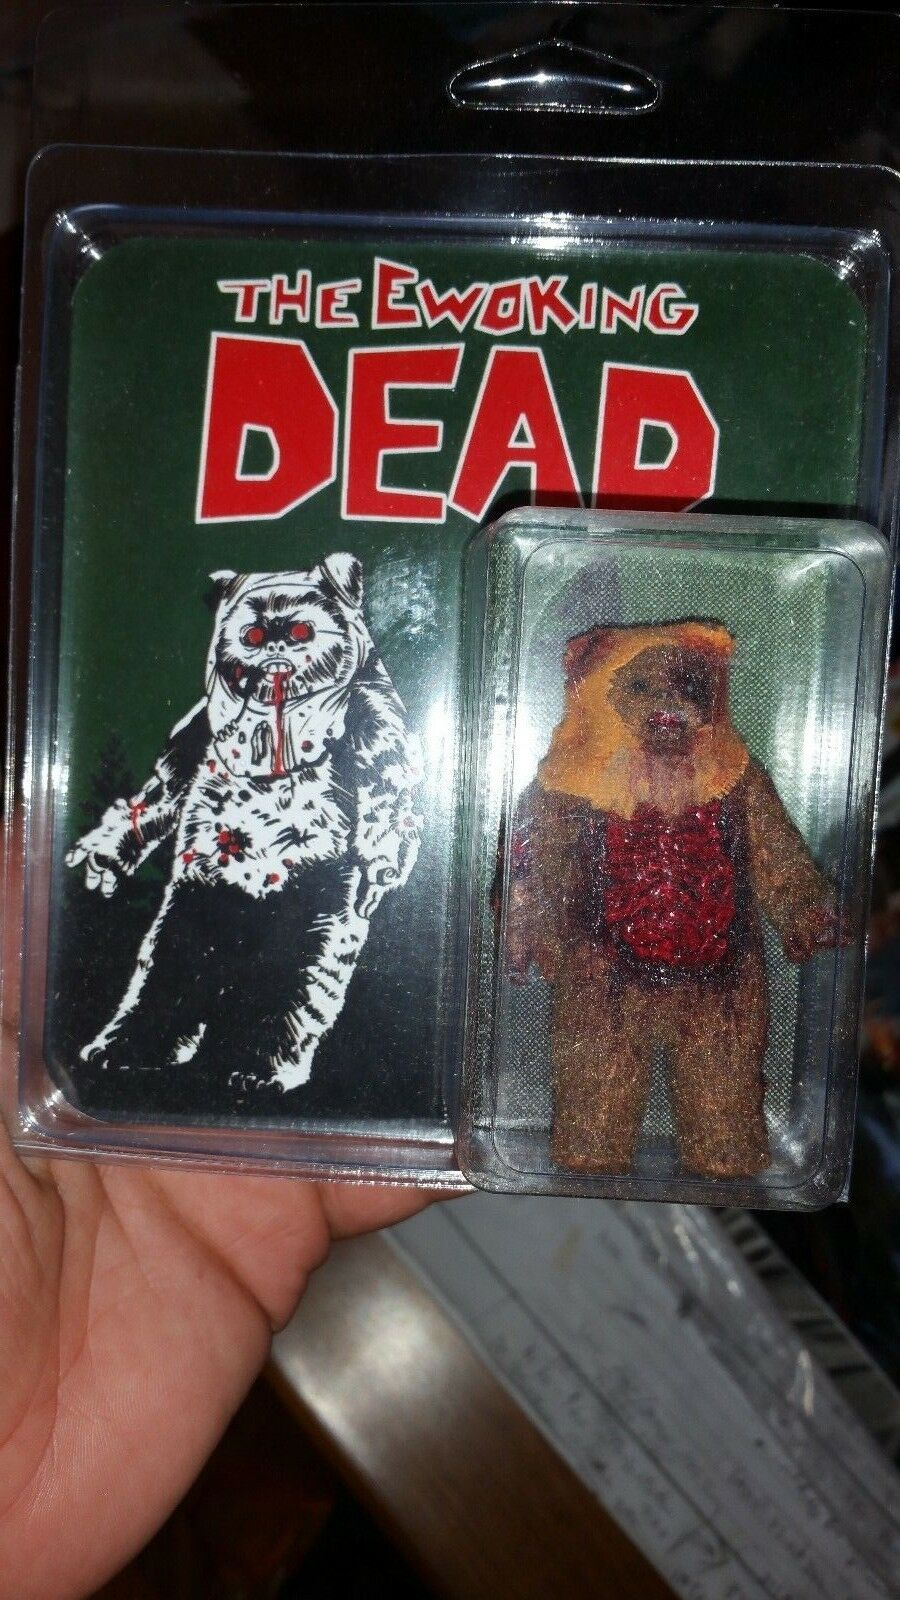 KILLER BOOTLEGS DCON EXCL THE EWOKING DEAD VINTAGE STYLE FIGURE FIGURE FIGURE  ONLY 50 MADE  155ca2